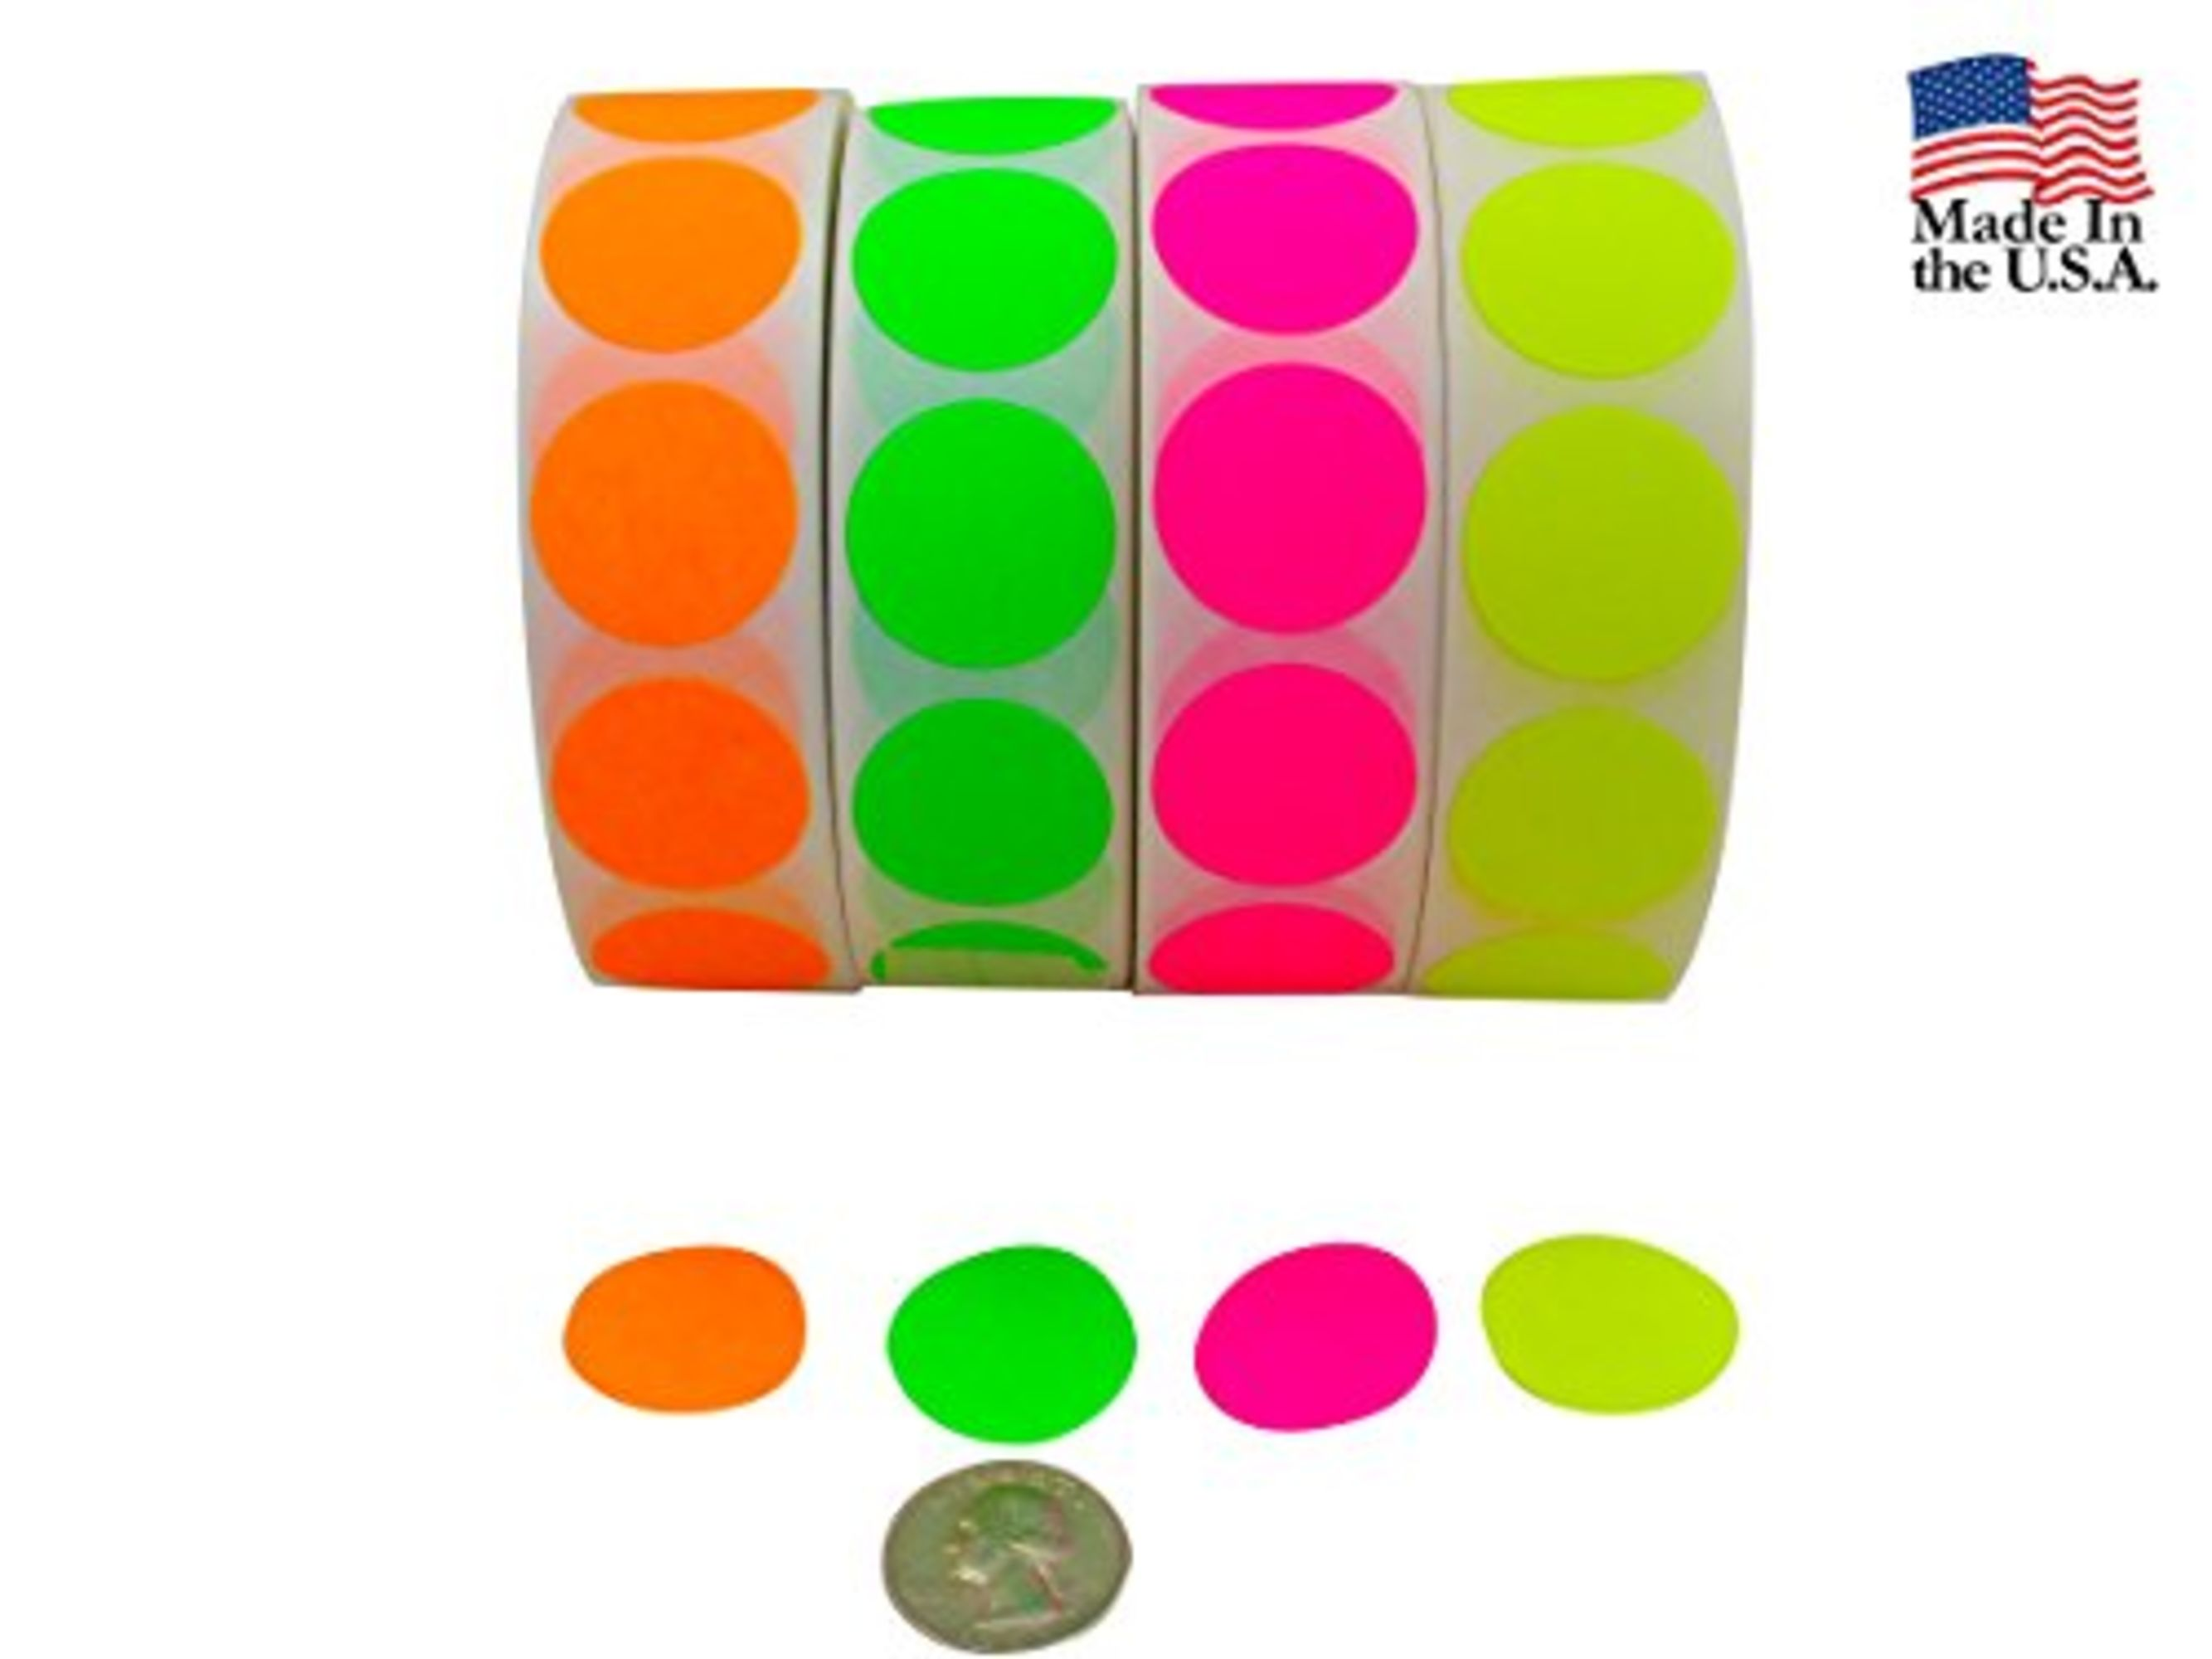 Color coding labels super bright fluorescent neon yellow green orange and pink round circle